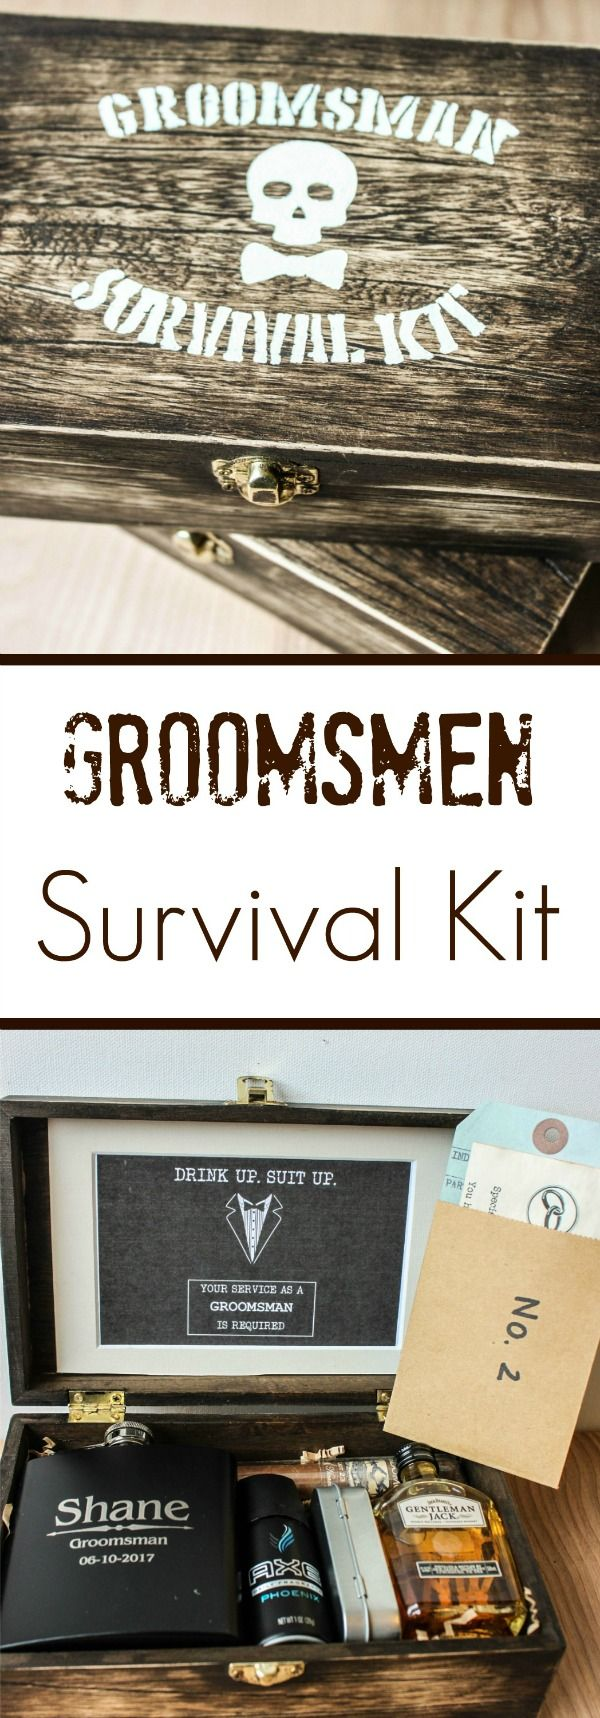 Rustic wooden DIY Groomsmen boxes: Groomsmen Survival Kits stuffed with everything your groomsmen will need on the day of and day after your wedding | therusticwillow.com